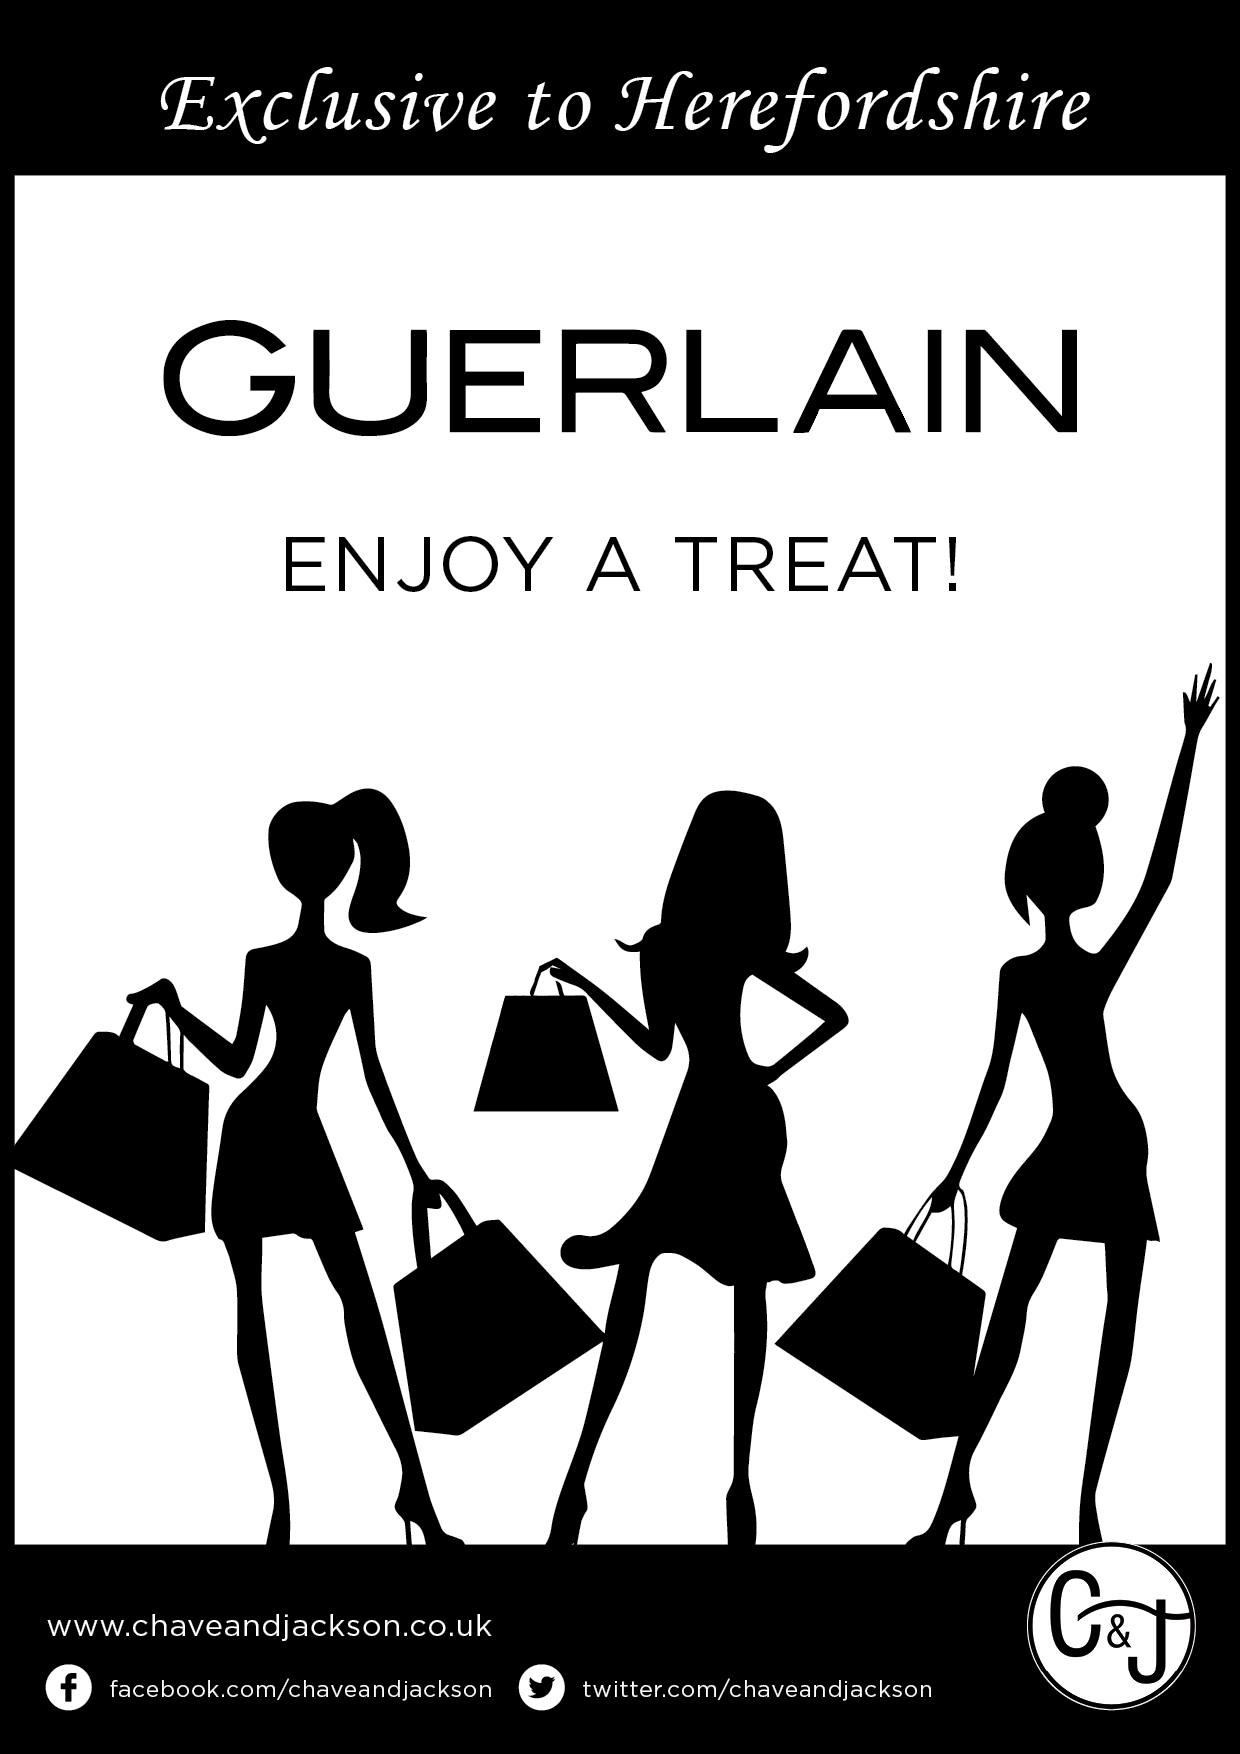 Guerlain Special 3 Day Event 15th - 17th September 2016